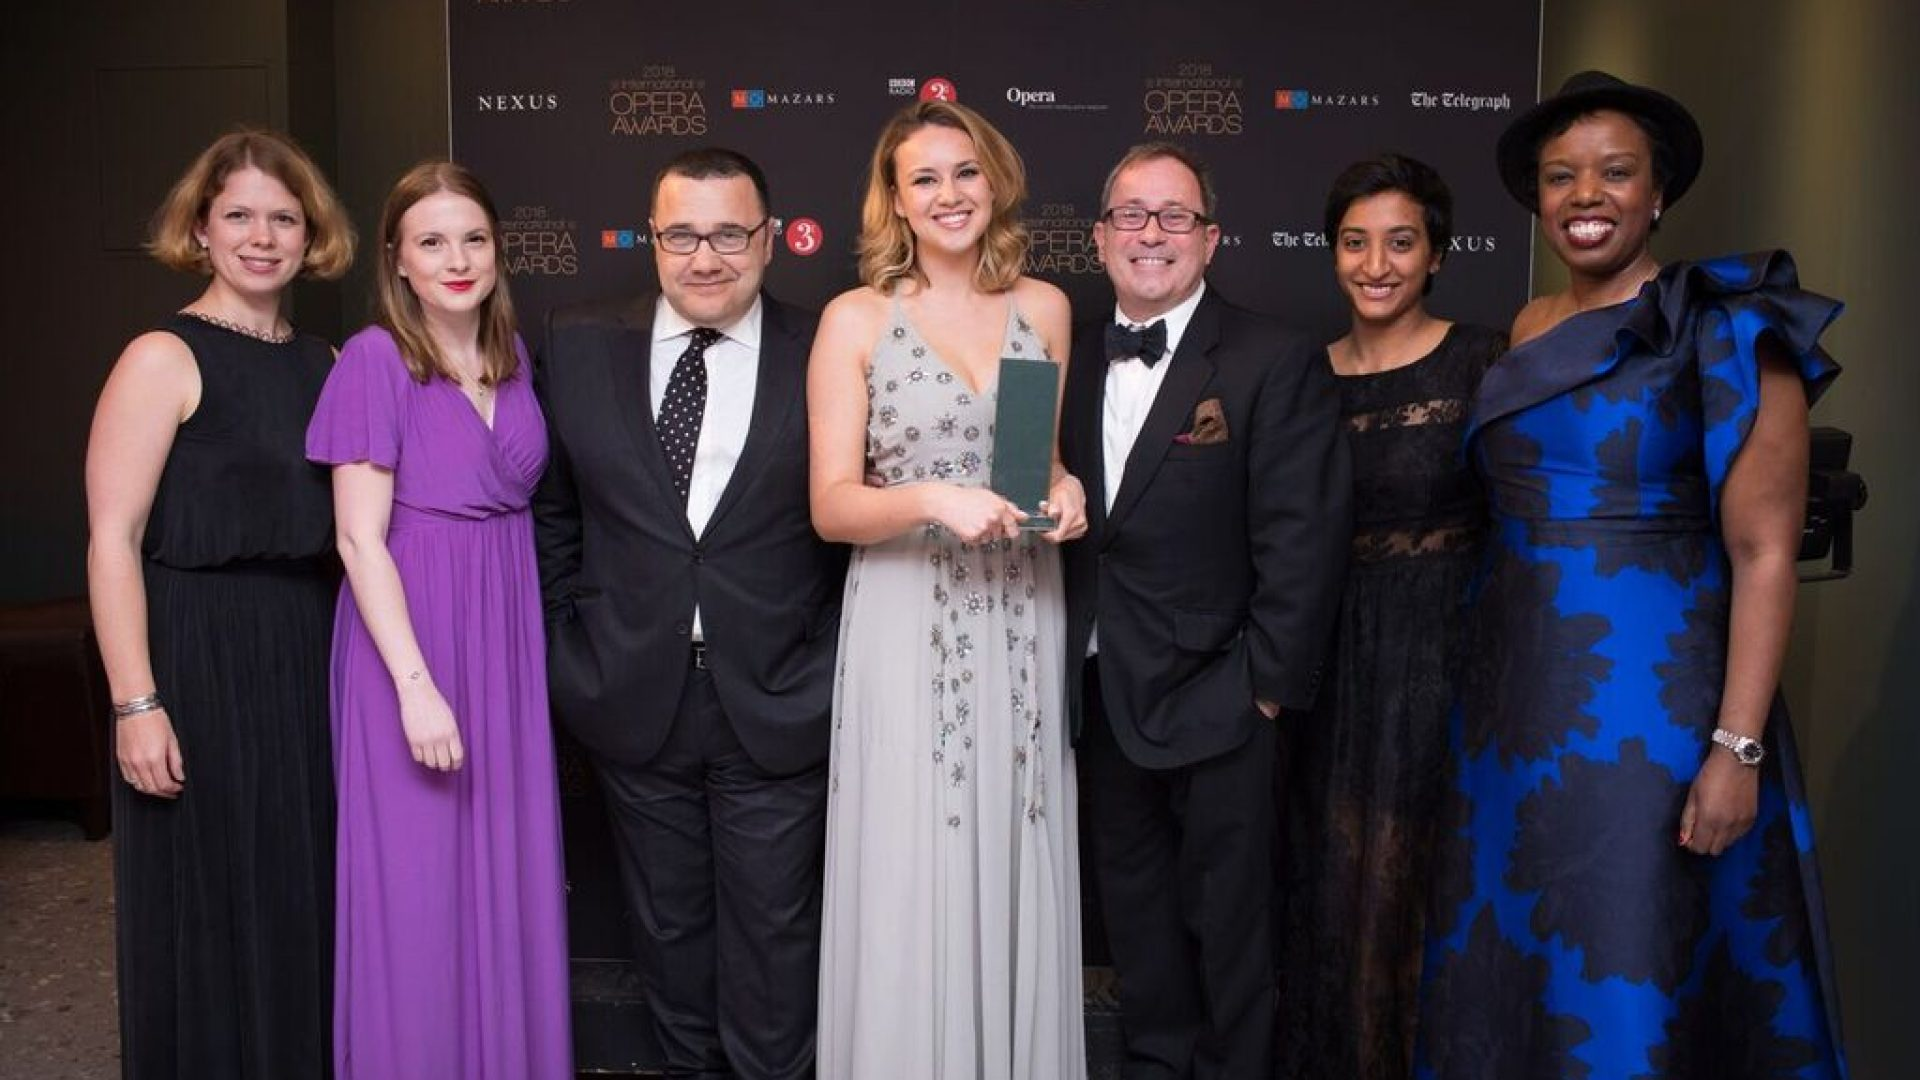 Inspire wins International Opera Award